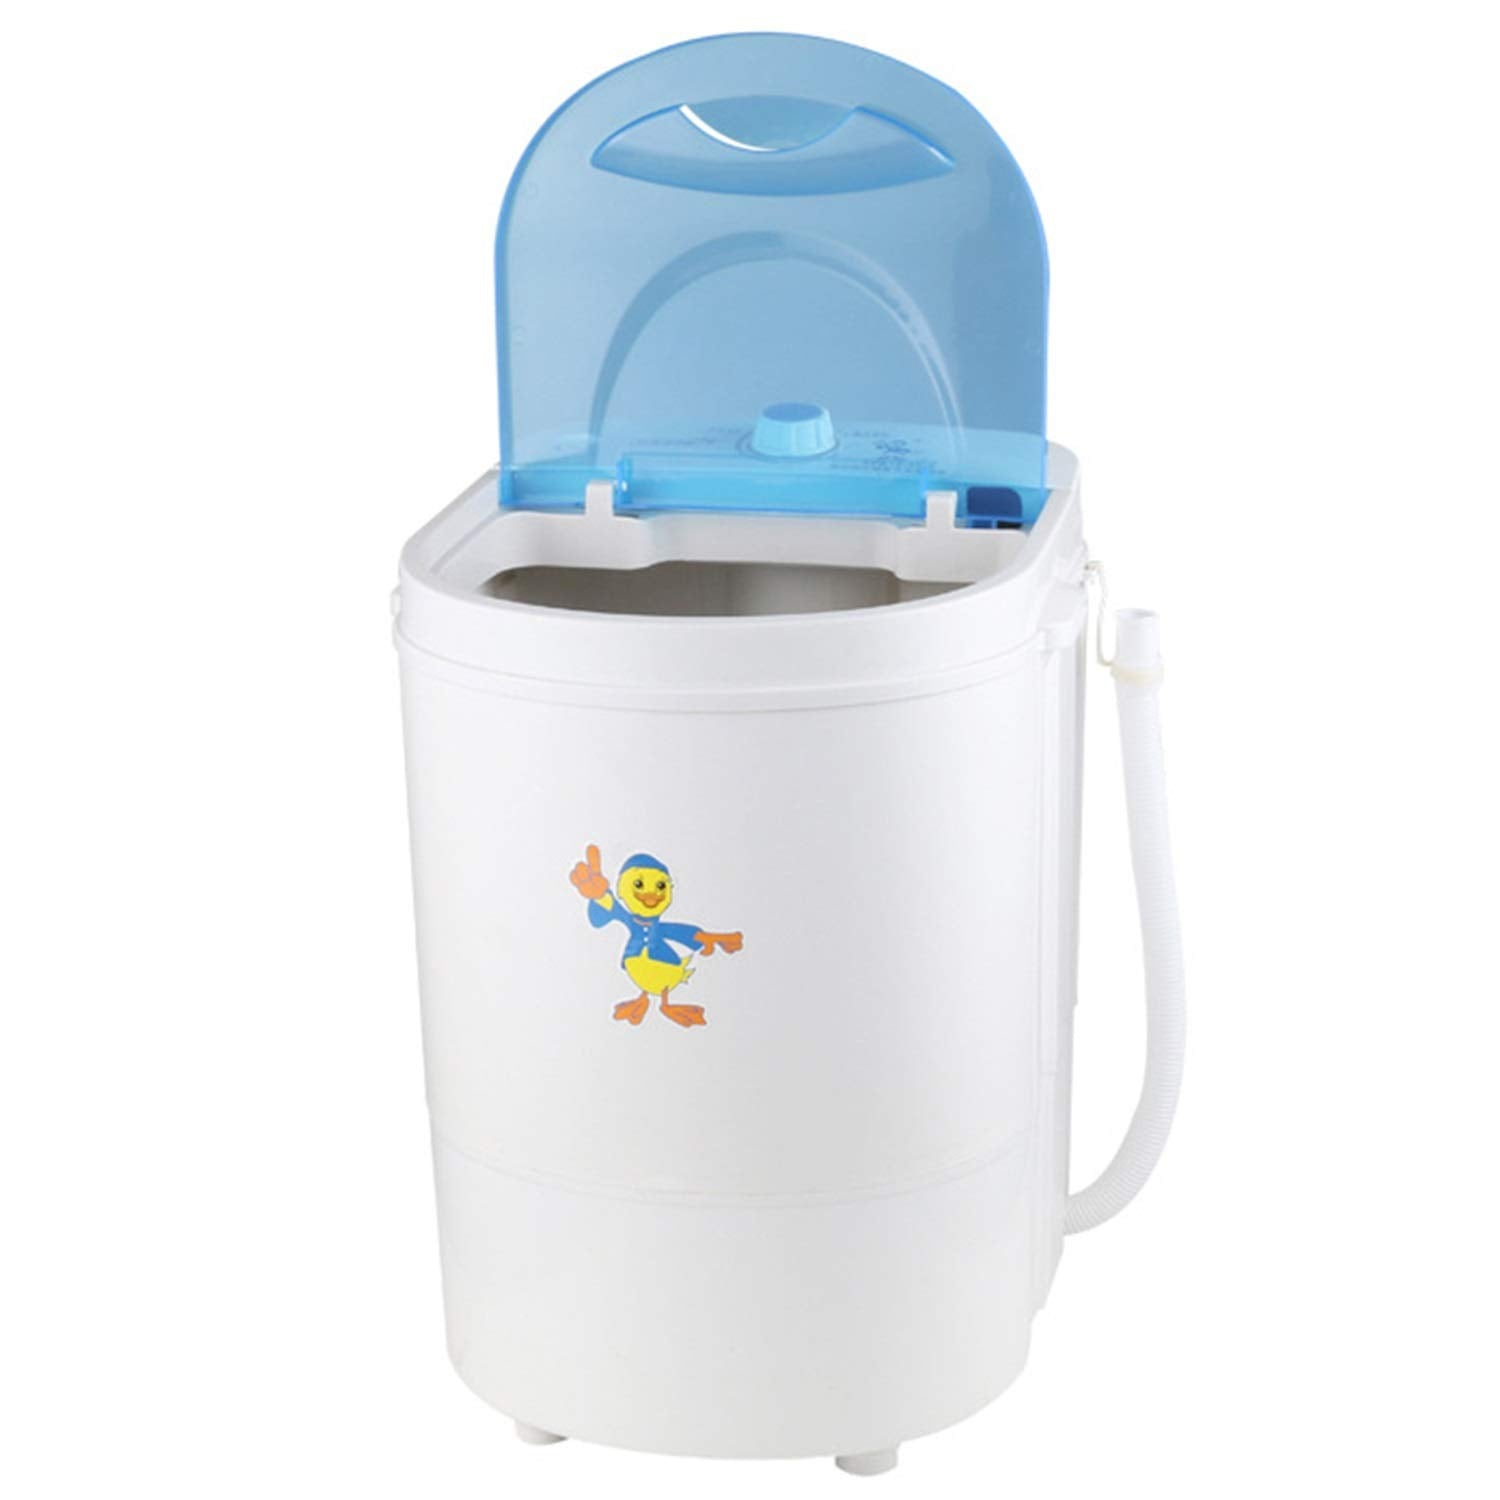 High Capacity Large Household Appliances, Mini Portable Washing Machine, Children's Clothing Dryer, Dryer, Dormitory, Household, Small Mother and Baby Dehydration Washing Machine